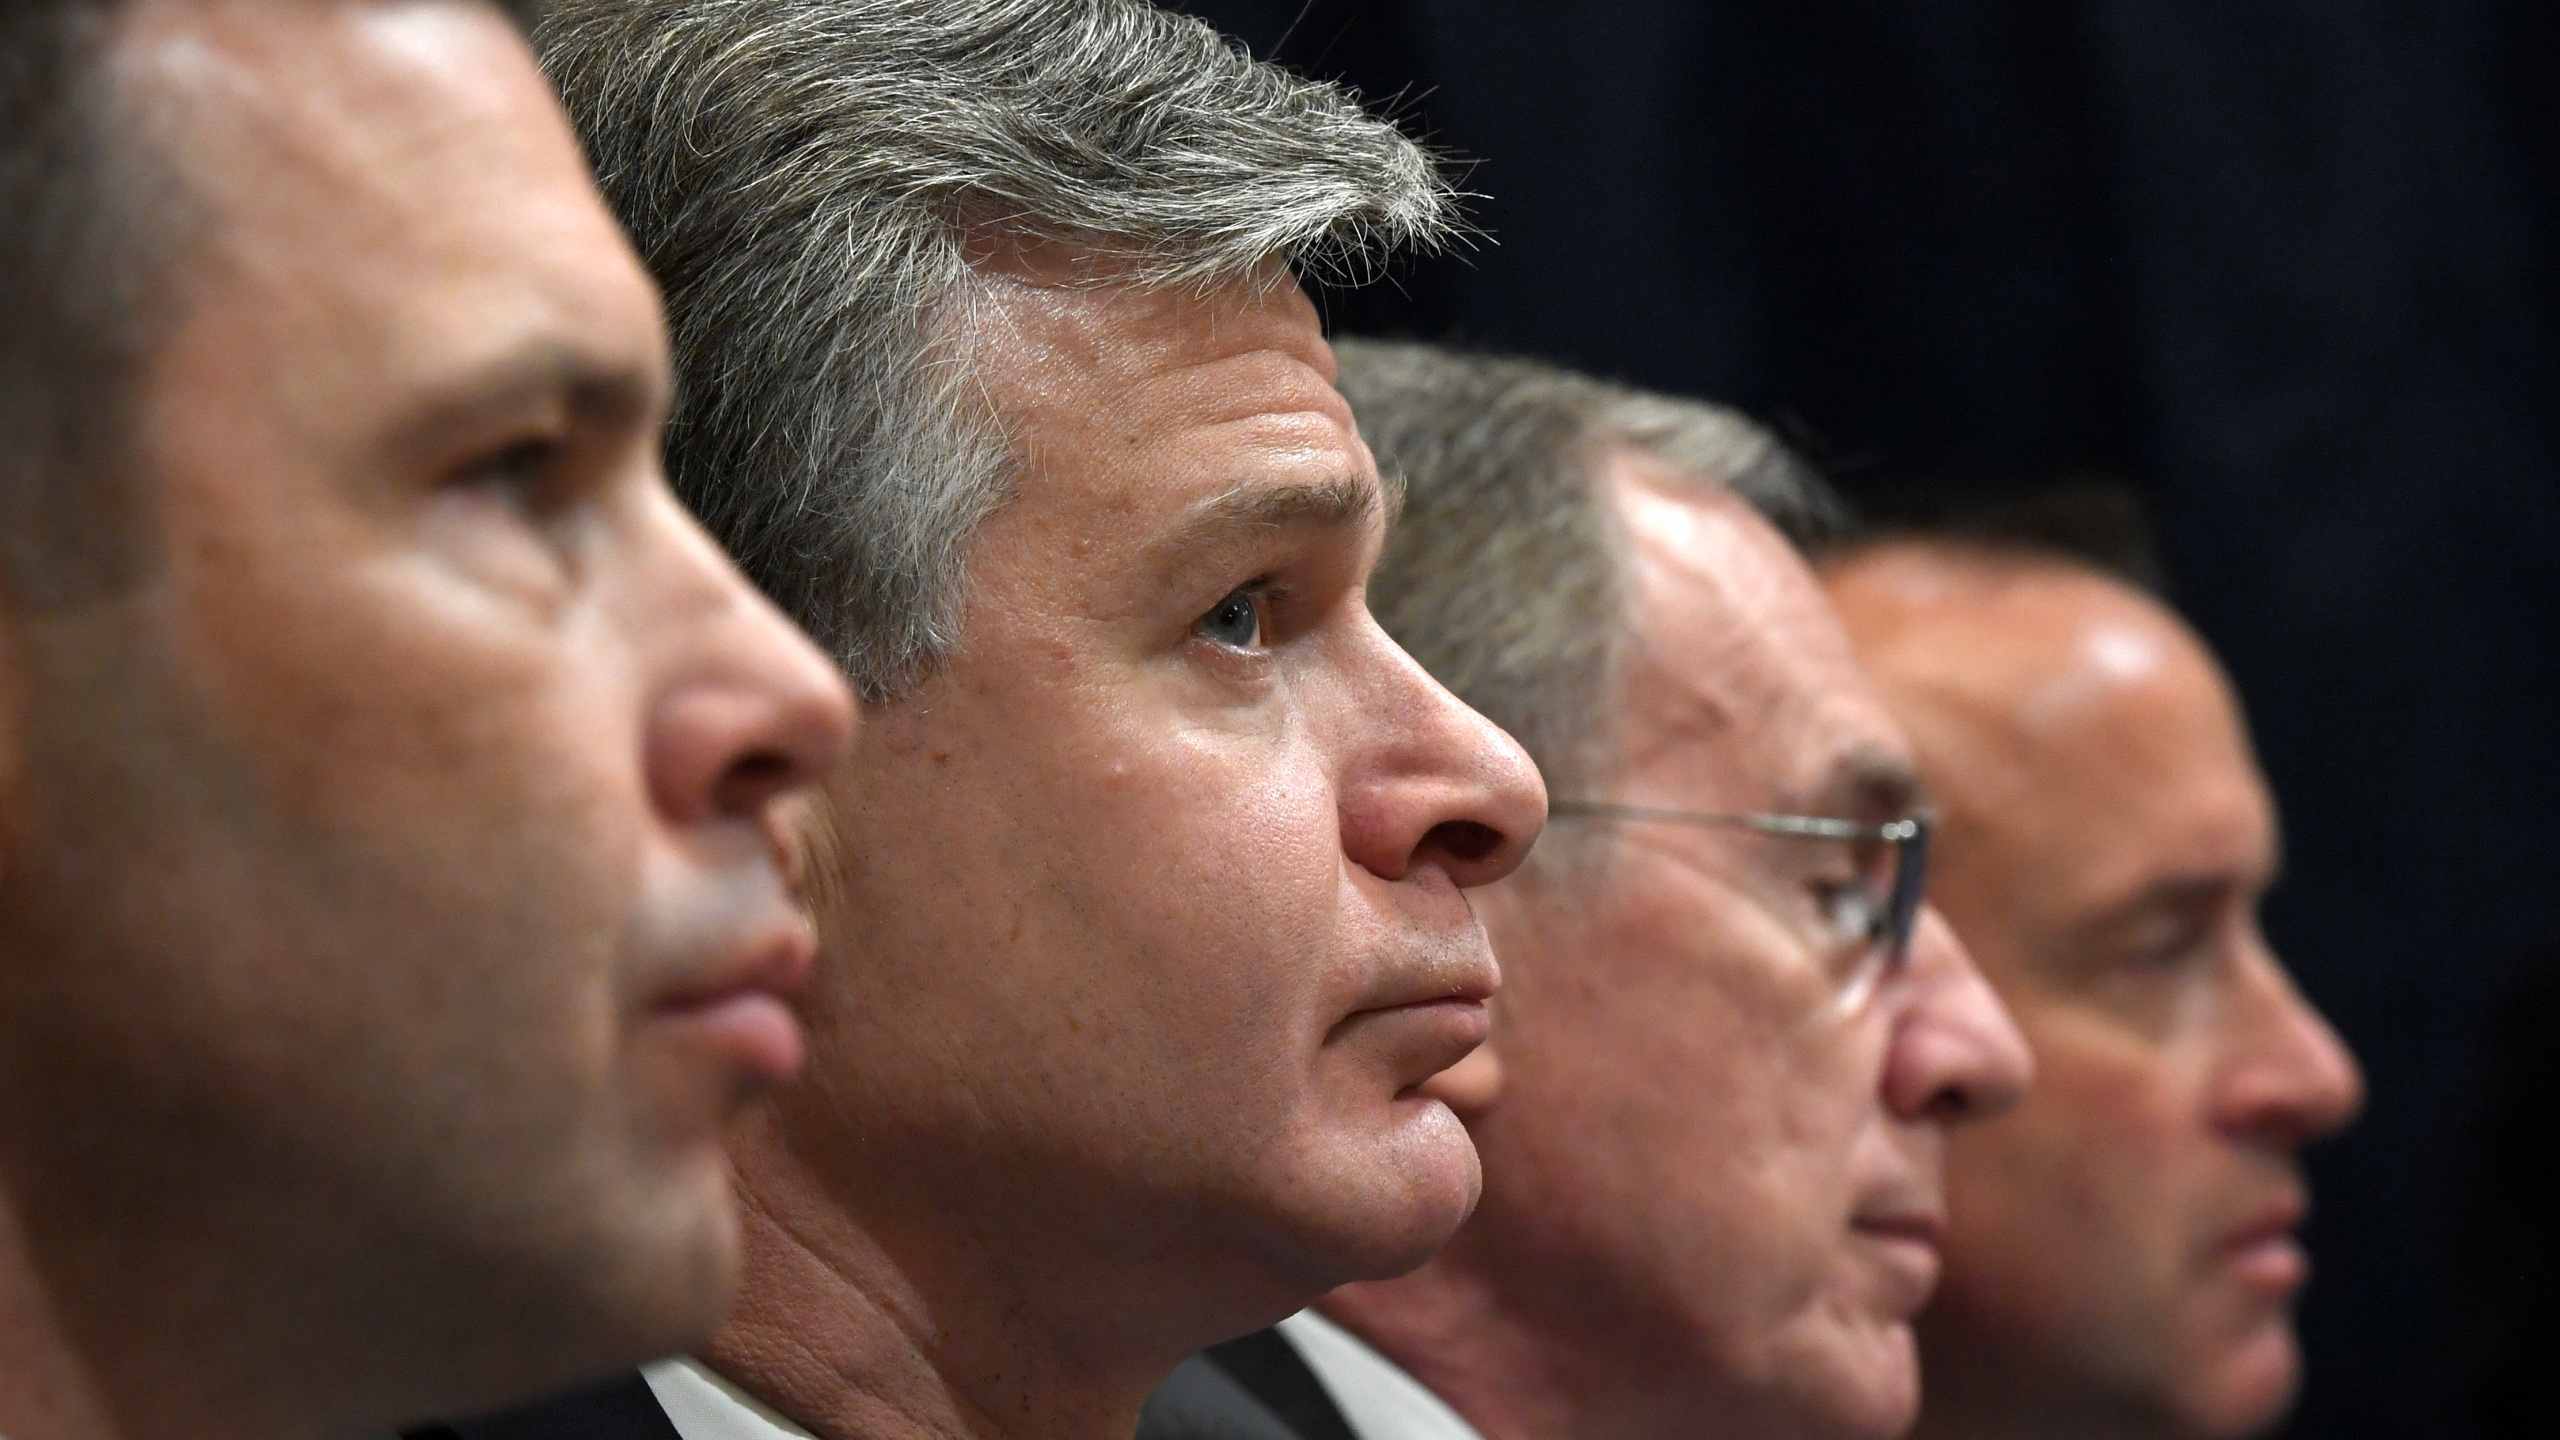 Christopher Wray, Kevin McAleenan, Russell Travers, David J. Glawe